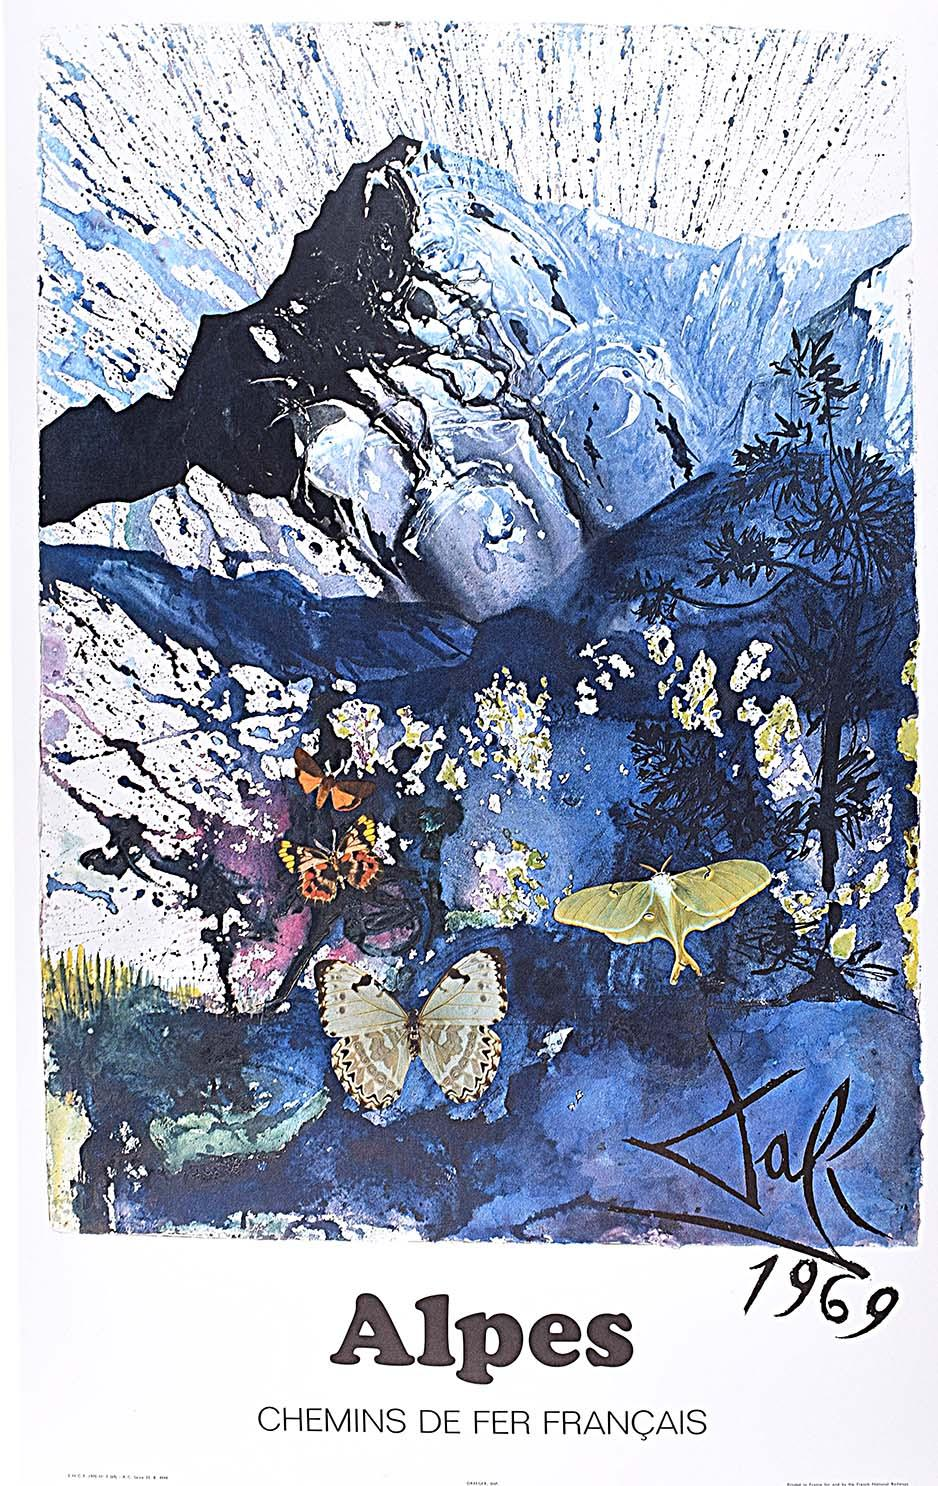 Salvador Dali The Alps Les Alpes Skiing Original French Poster SNCF on Wove